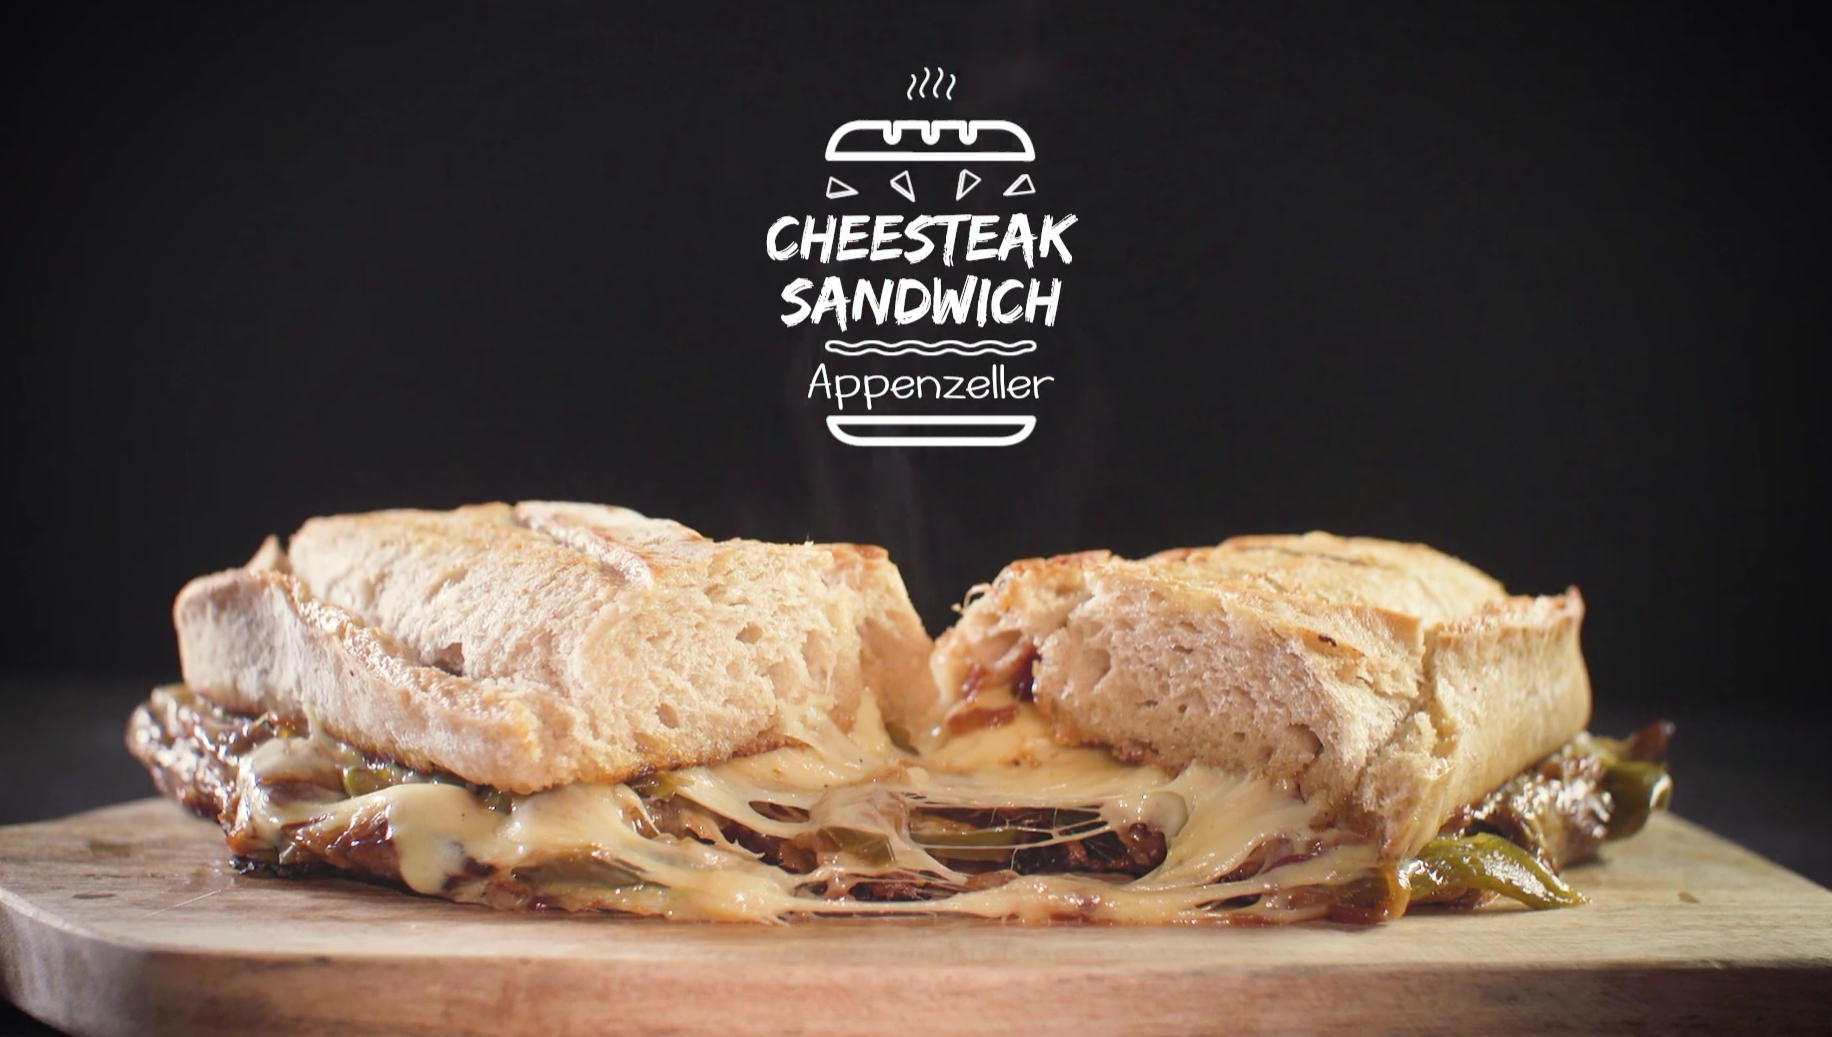 Recipe: Appenzeller Cheesesteak Sandwich